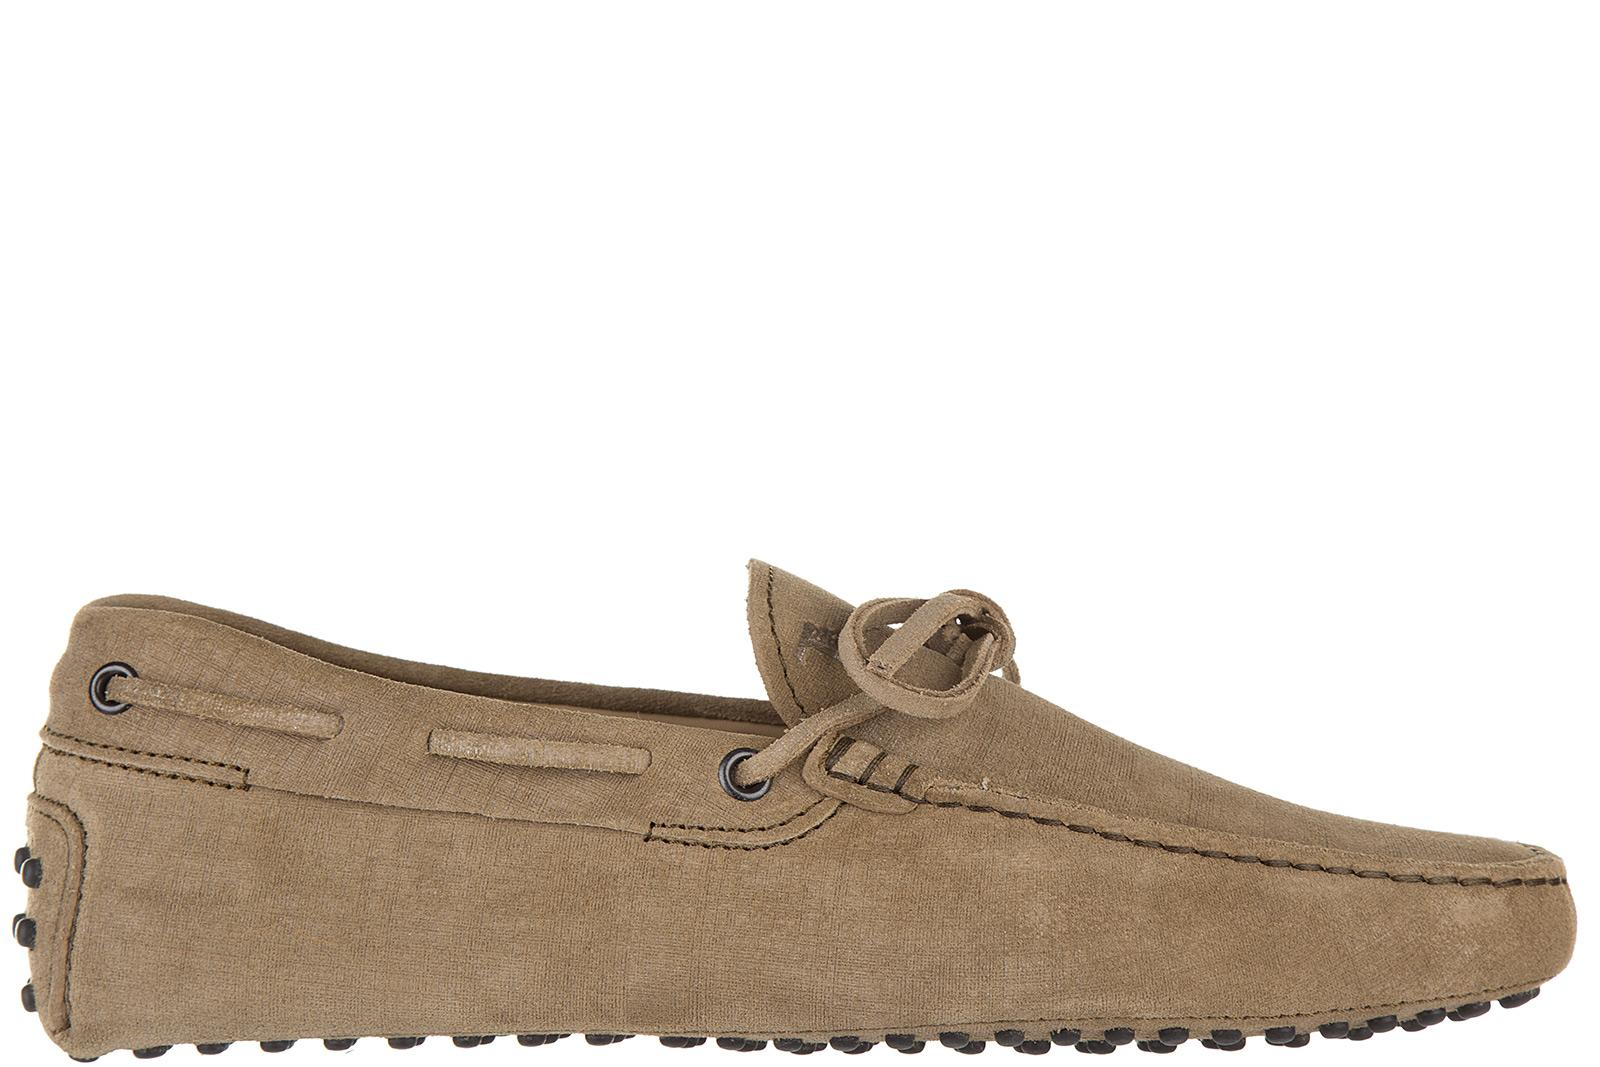 Tod's Men's Leather Loafers Moccasins  Laccetto Gommino 122 In Beige